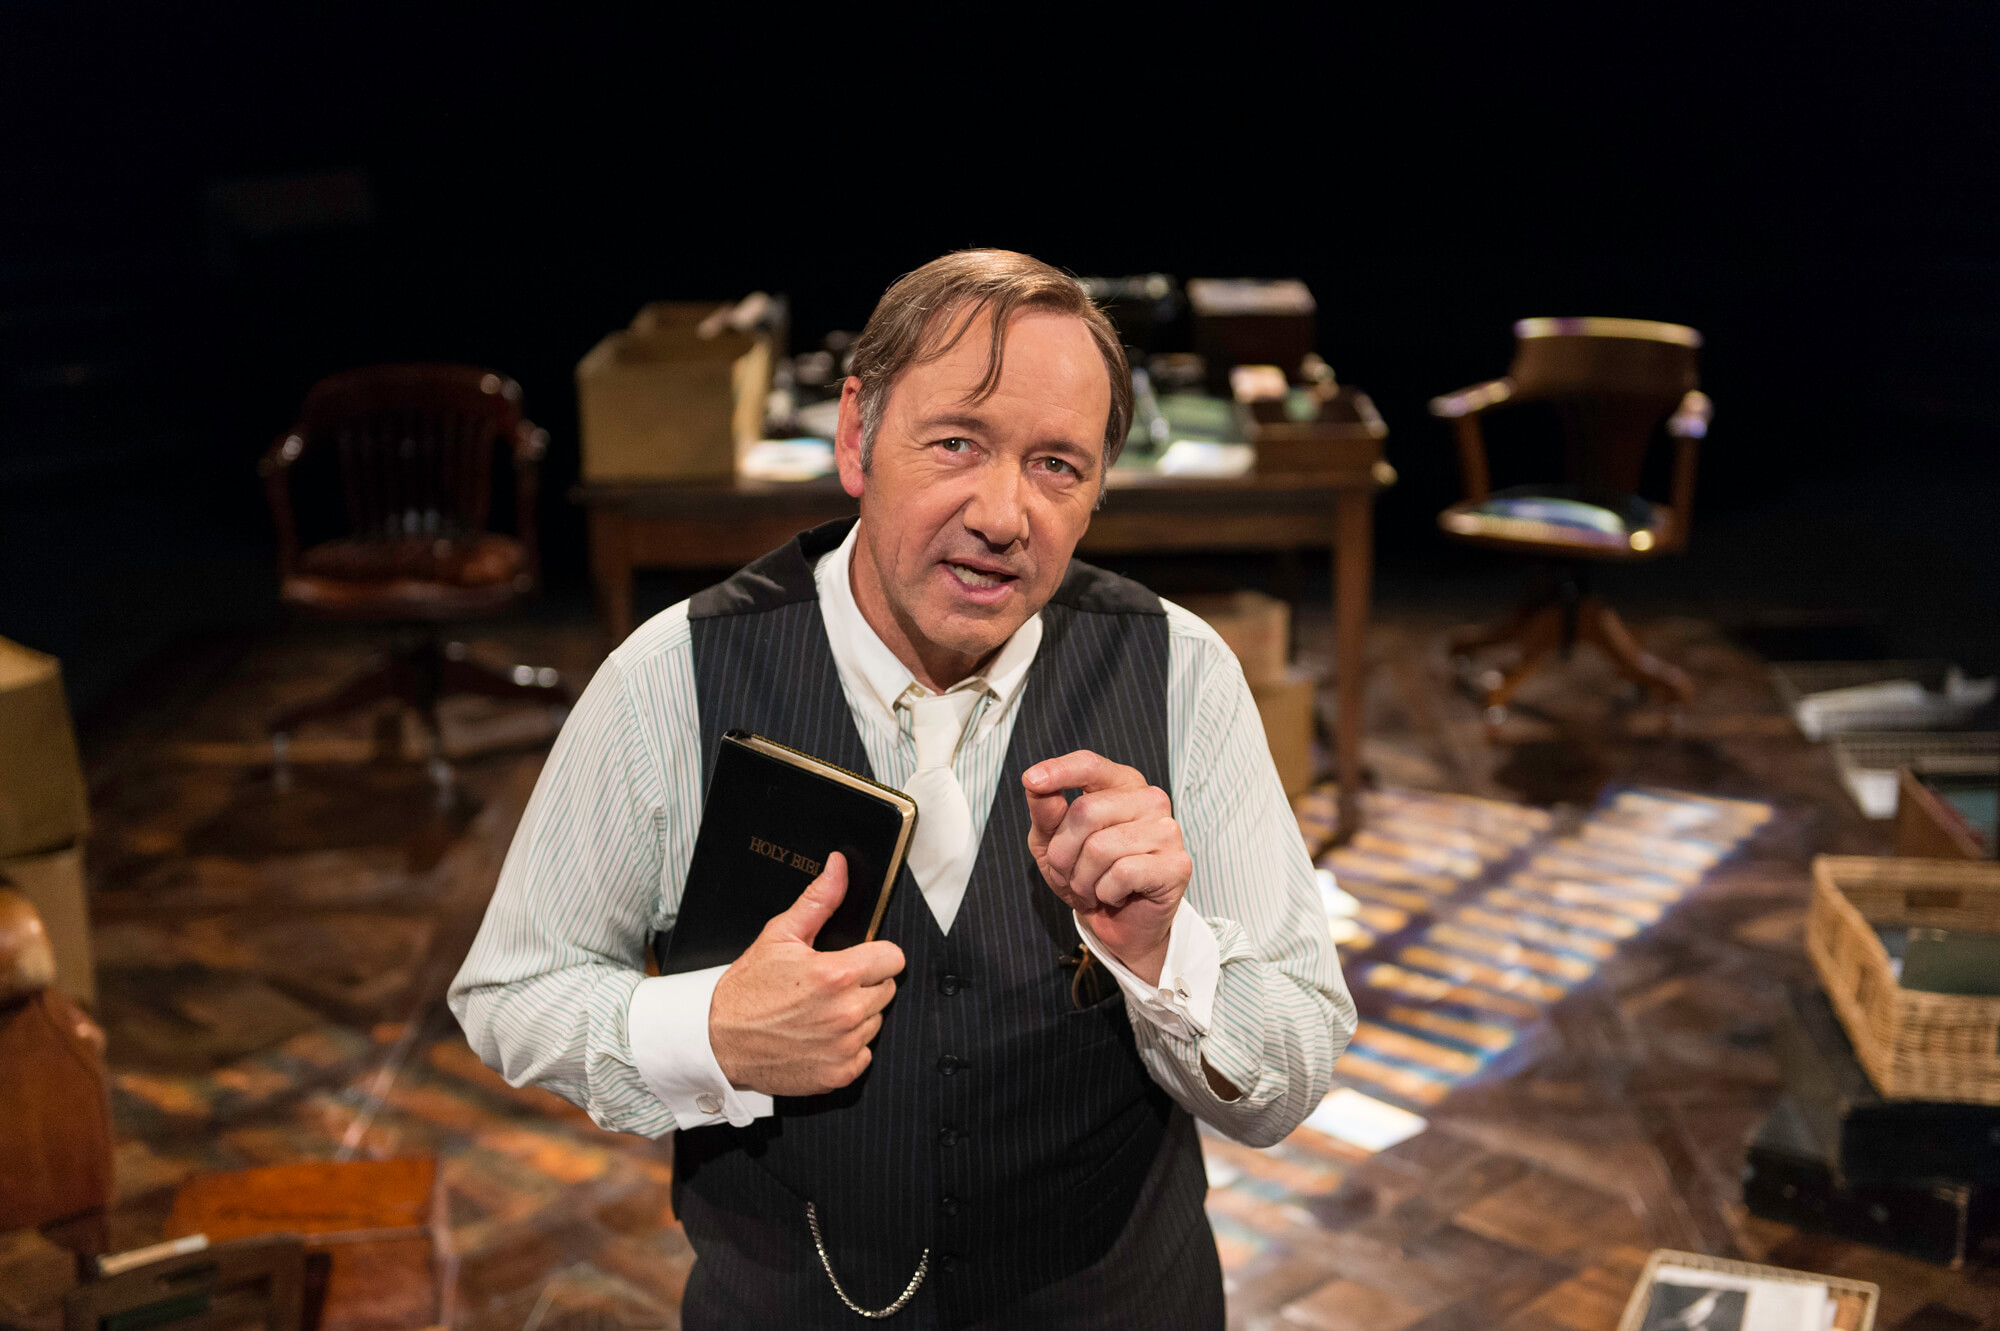 Kevin Spacey Clarence Darrow Theatre Old Vic. Clarence Darrow at the Old Vic